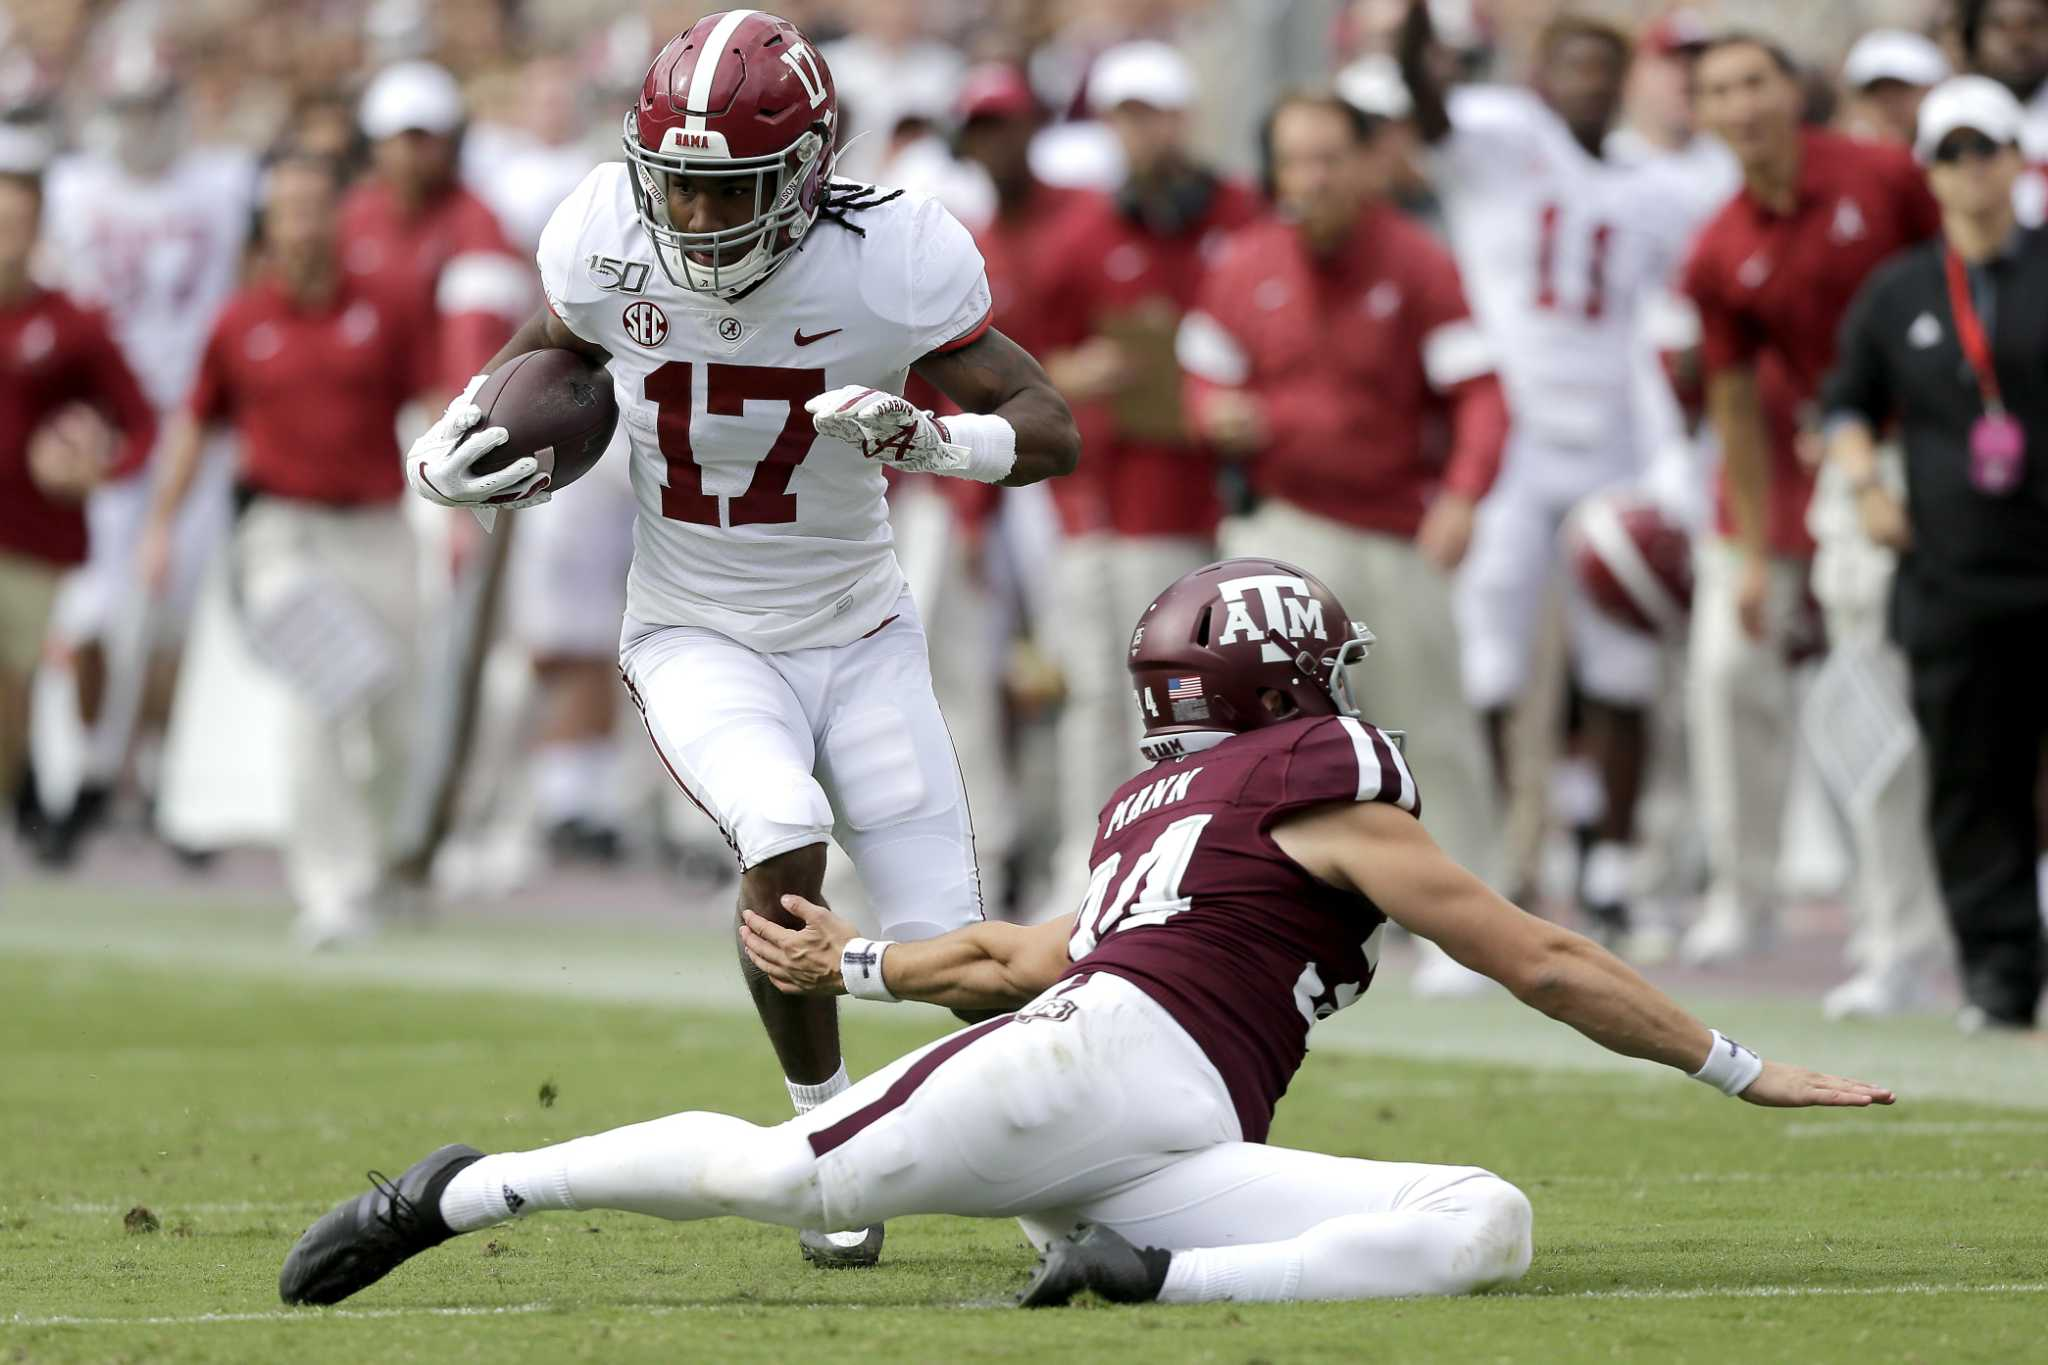 'Third phase' problems derail Aggies in loss to Alabama